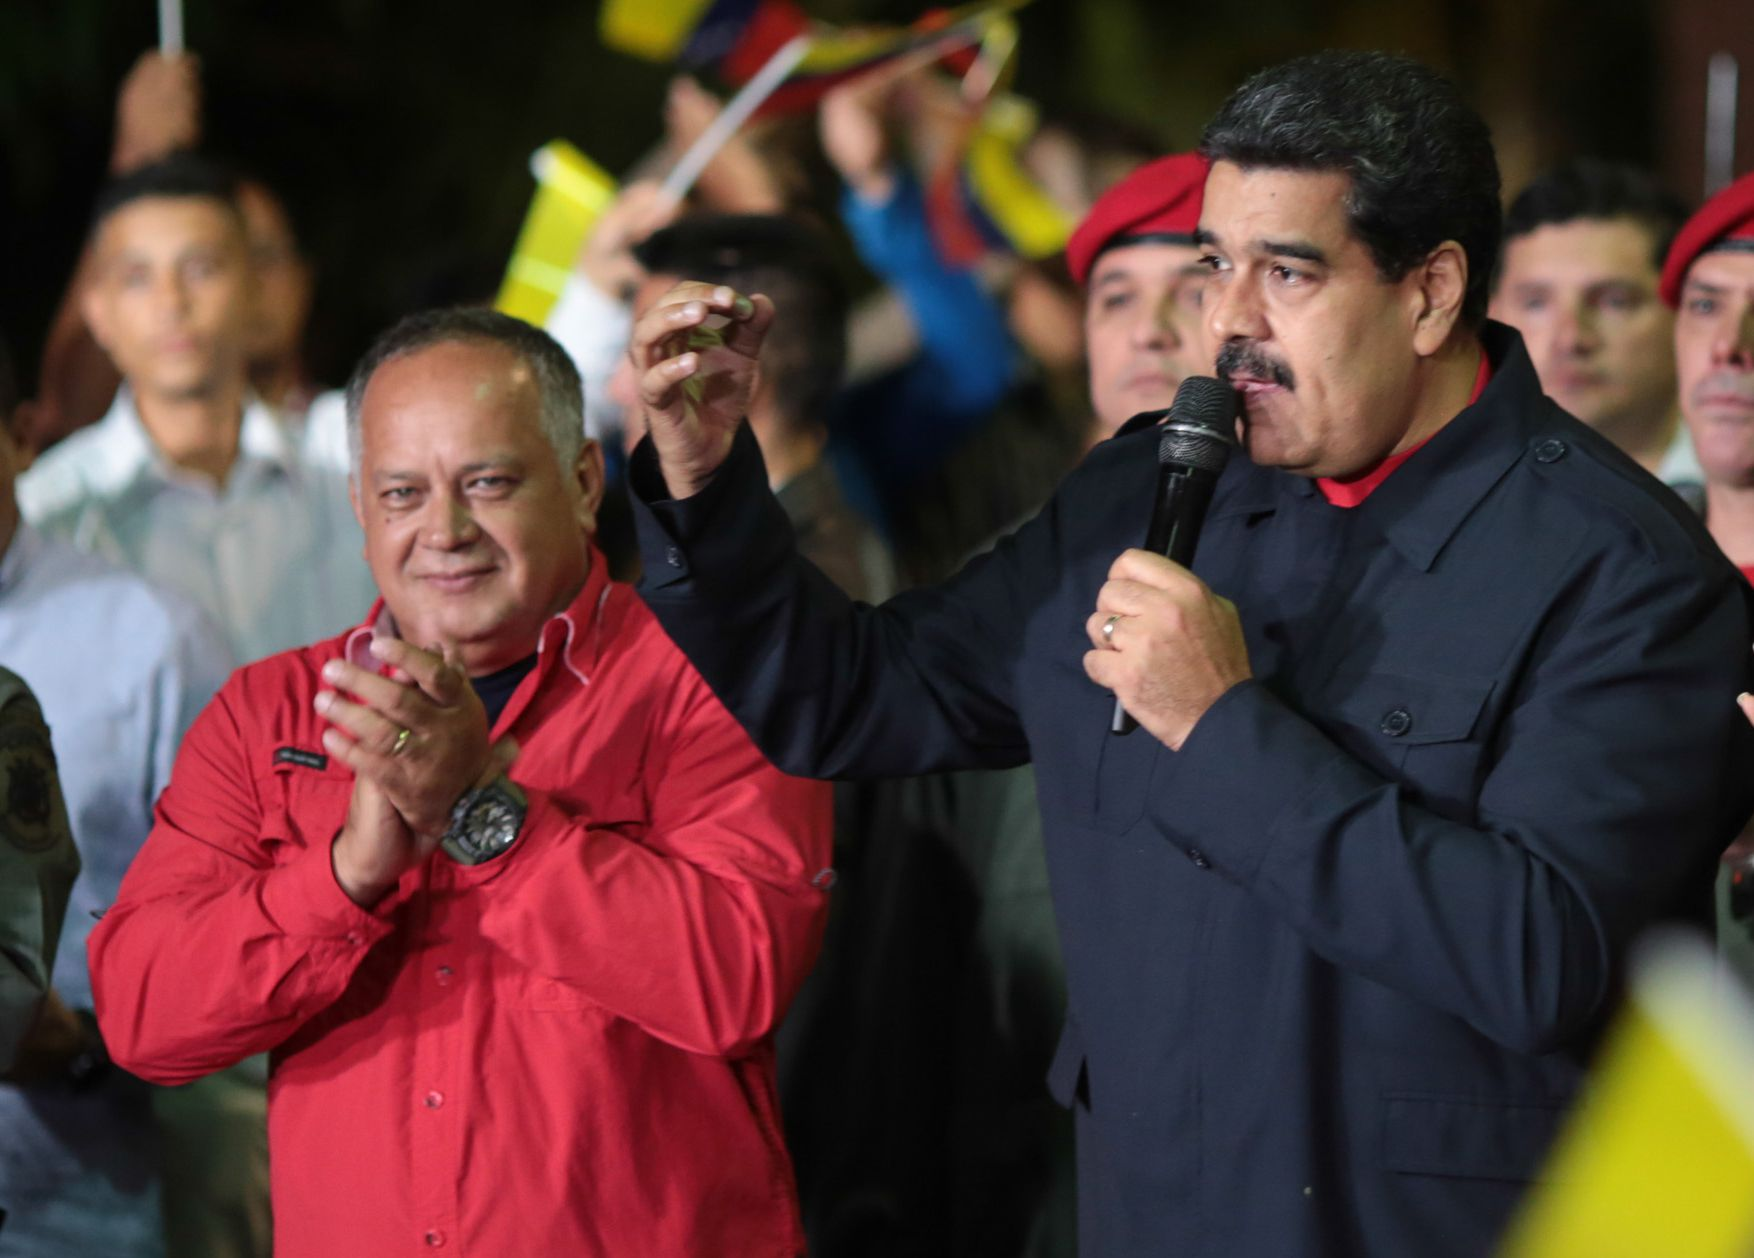 "Venezuelan President Nicolas Maduro (R) speaks beside Diosdado Cabello (L), a member of the Constituent Assembly, in Caracas on October 15,2017, after Maduro's socialist government won a landslide 17 out of 23 states in Venezuela's regional elections, according to official results announced by the National Elections Council. The opposition Democratic Union Roundtable (MUD) coalition, which earlier said the upcoming results were ""suspicious"", took only five of the states, according to the results. / AFP PHOTO / PRESIDENCIA / PRESIDENCIA / == RESTRICTED TO EDITORIAL USE  / MANDATORY CREDIT:  ""AFP PHOTO /  PRRSIDENCIA"" / NO MARKETING / NO ADVERTISING CAMPAIGNS /  DISTRIBUTED AS A SERVICE TO CLIENTS  ==        (Photo credit should read PRESIDENCIA/AFP/Getty Images)"